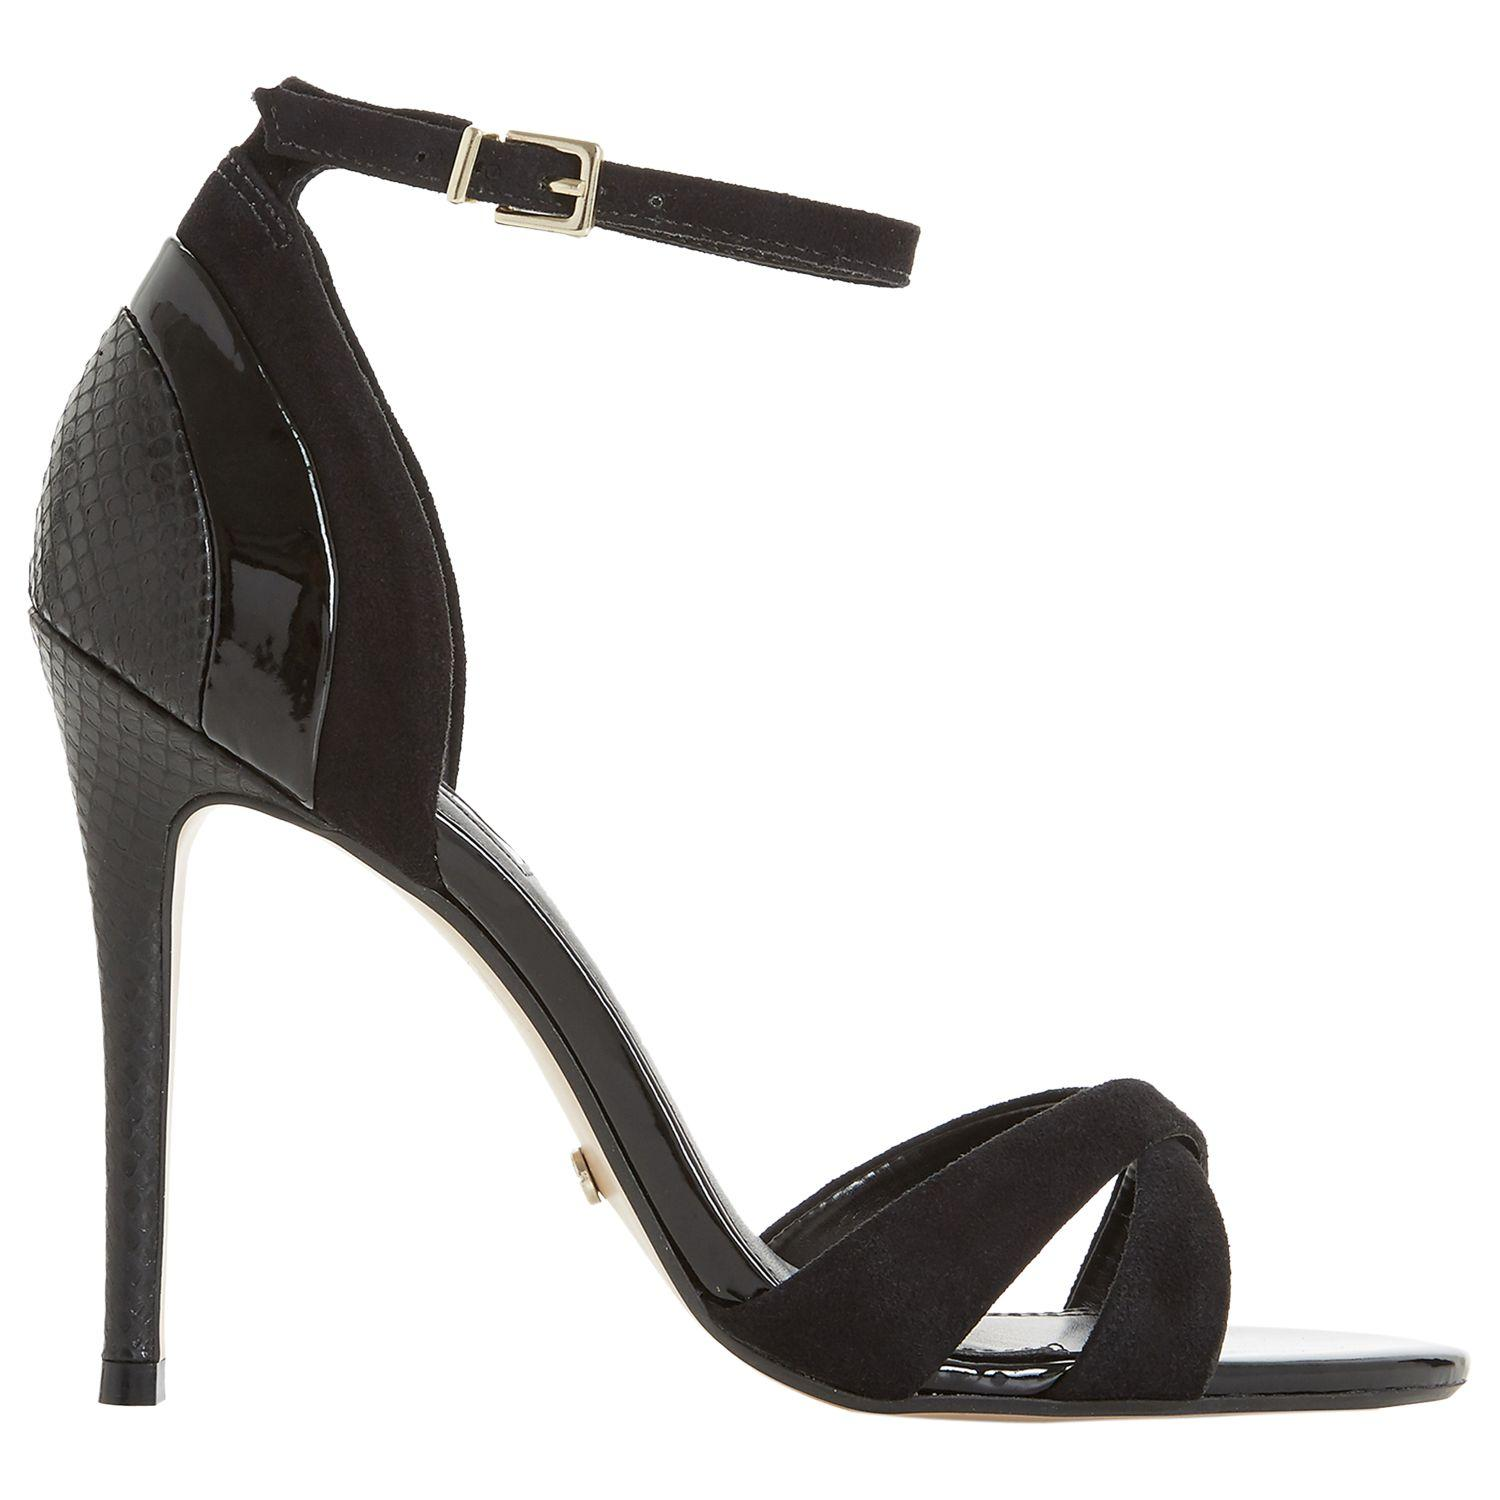 0cdee6e058 Dune. Women's Black Marcy Stiletto Heel Sandals. £85 £42 From John Lewis  and Partners